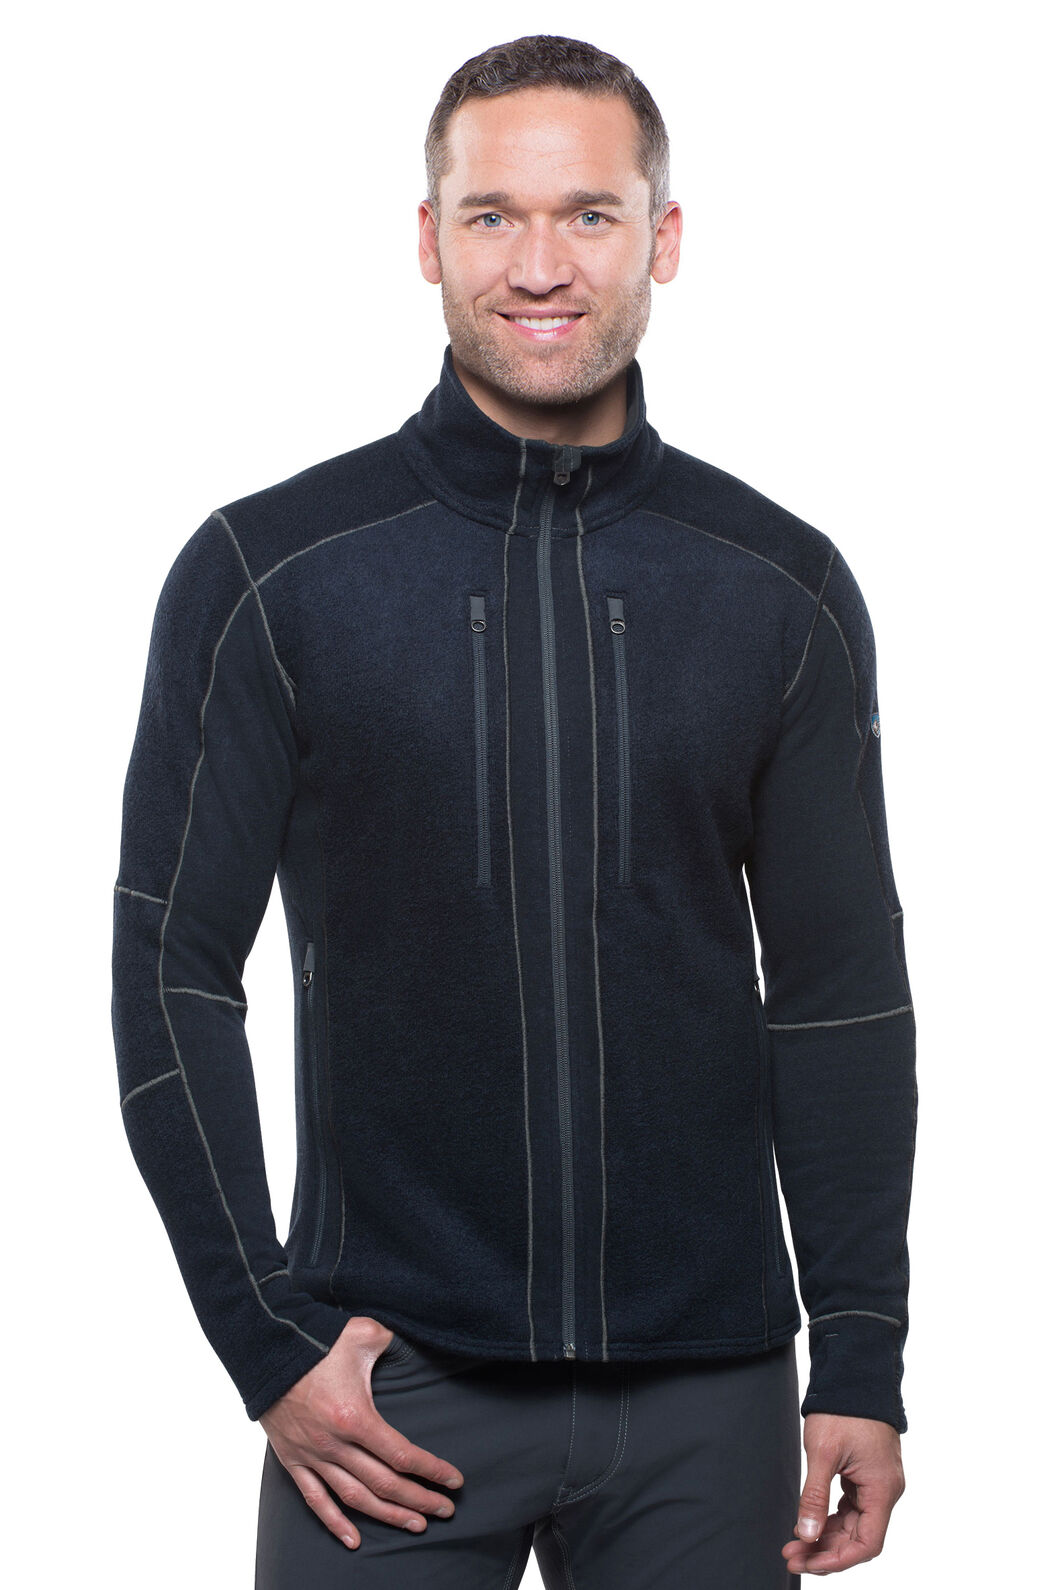 Kuhl Interceptr Fleece Jacket - Men's, Navy, hi-res